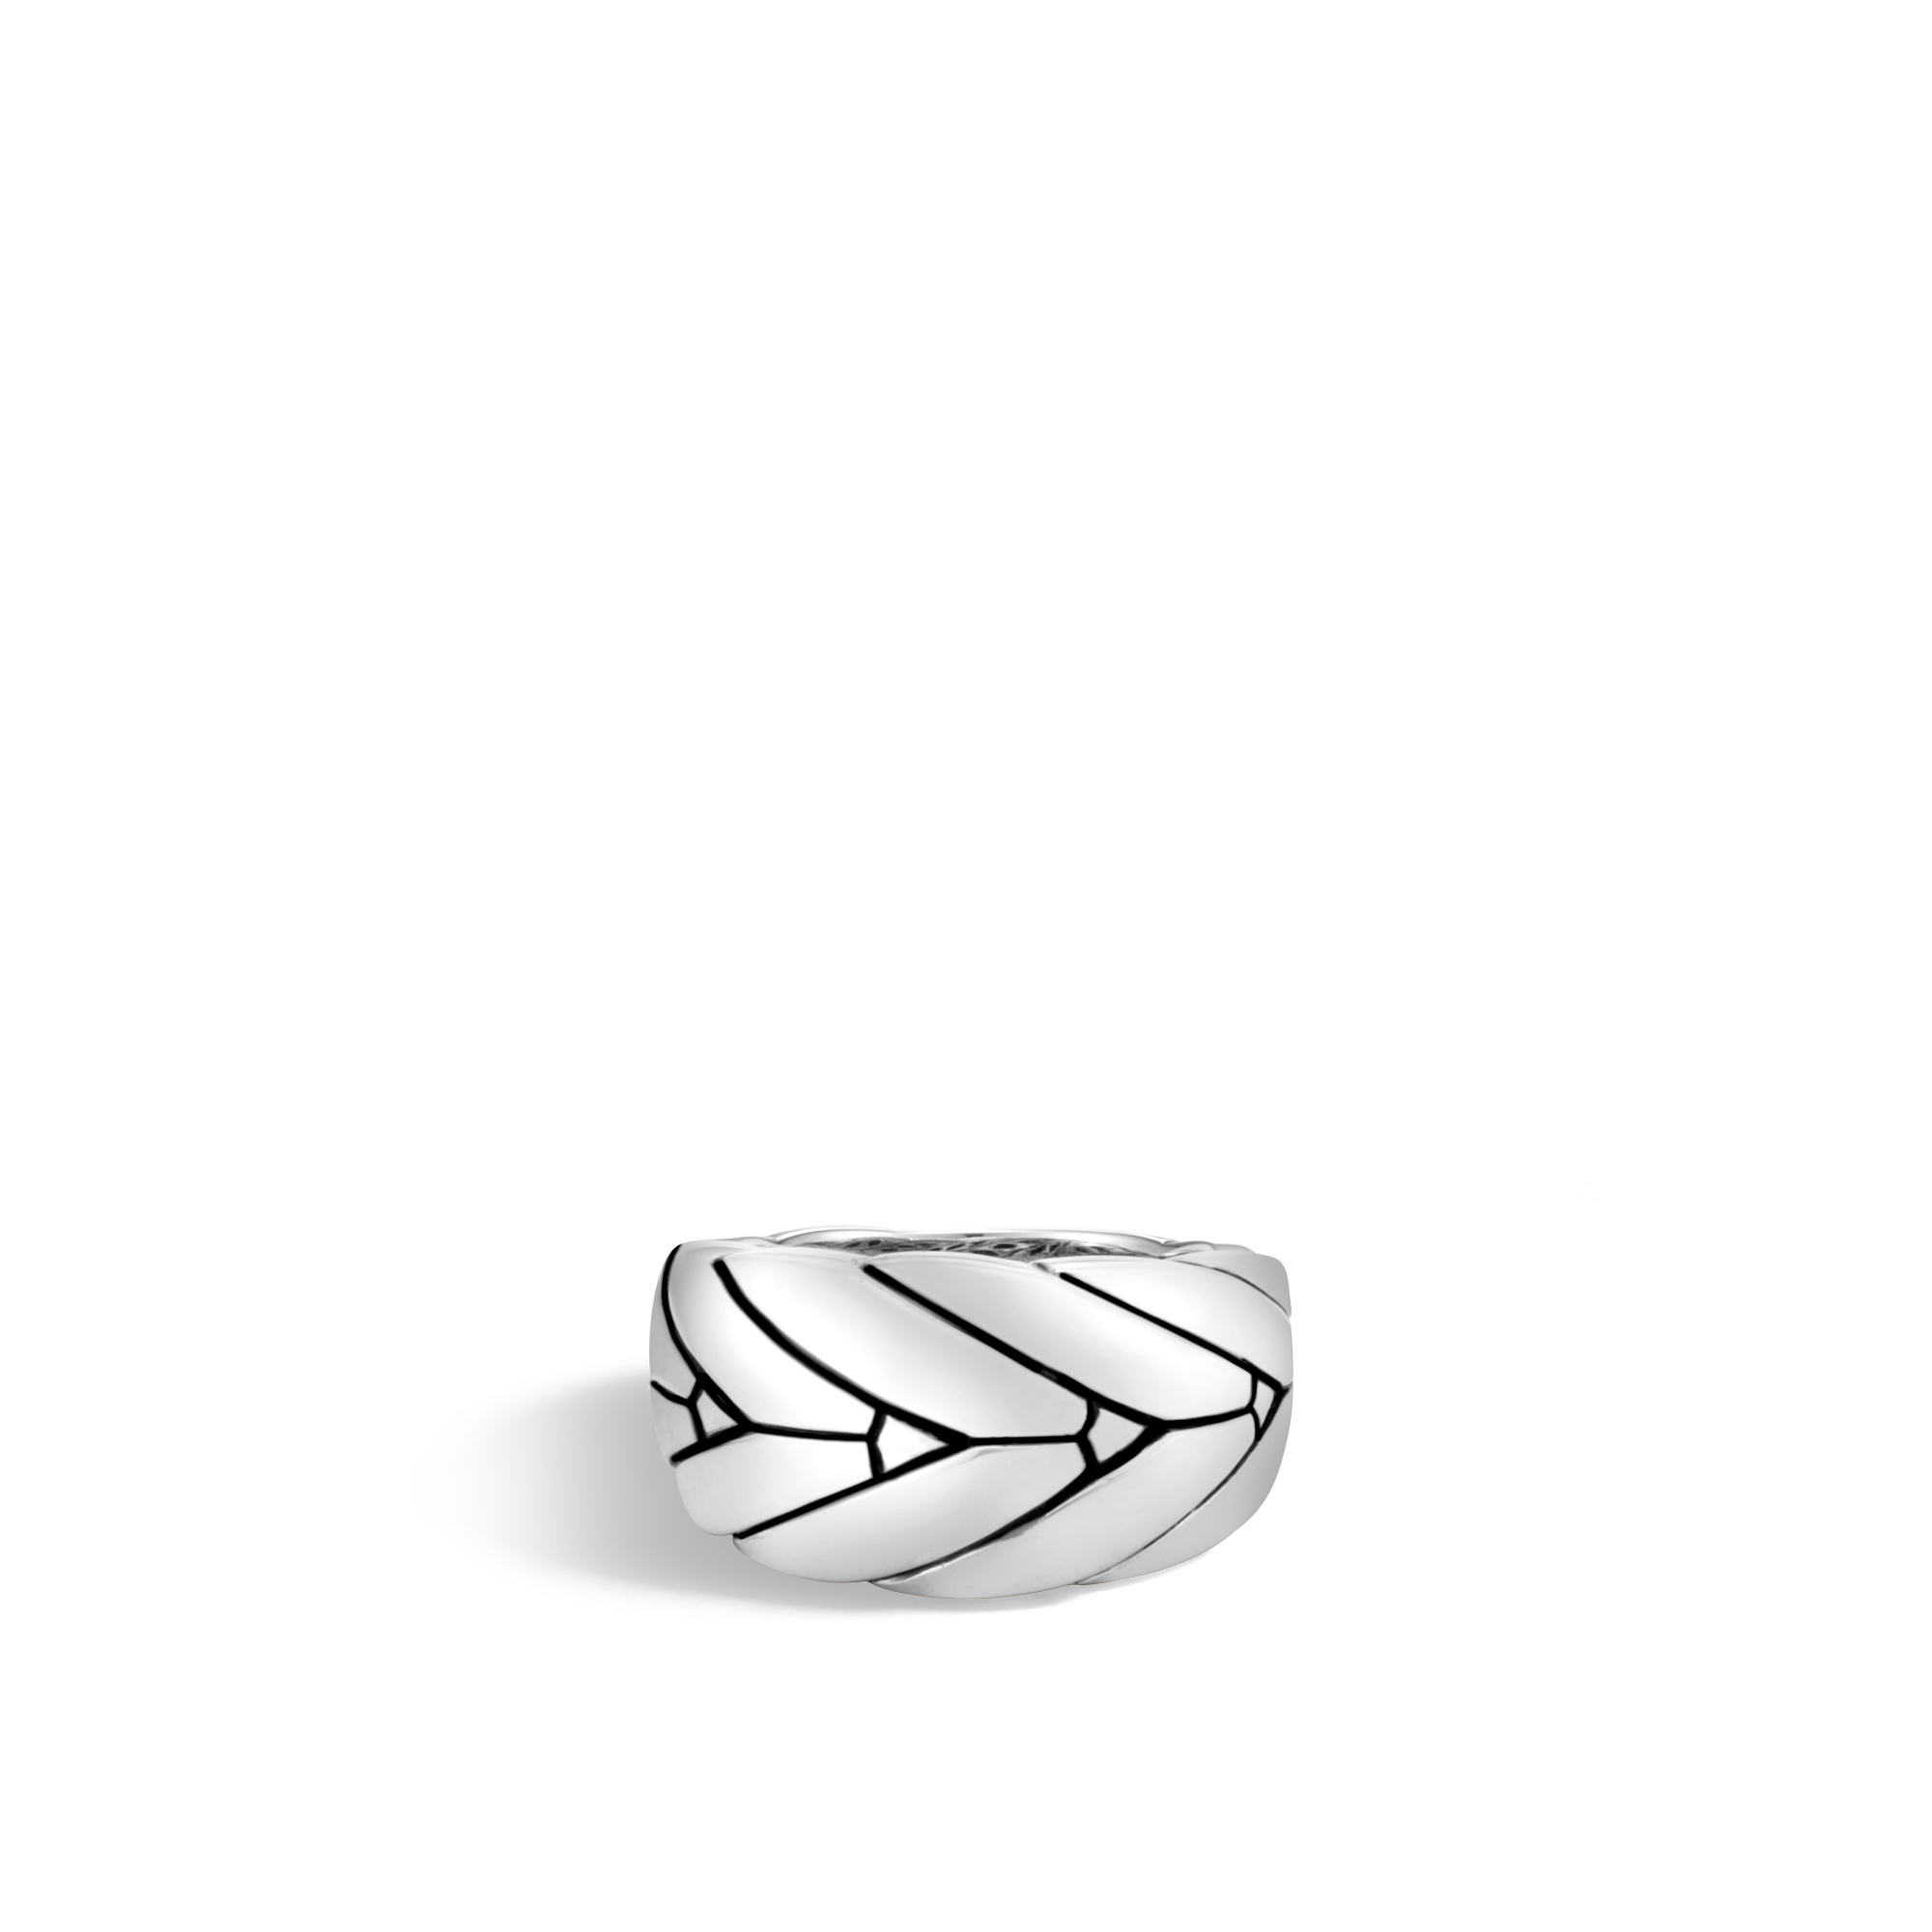 Modern Chain 12.5MM Ring in Silver, , large